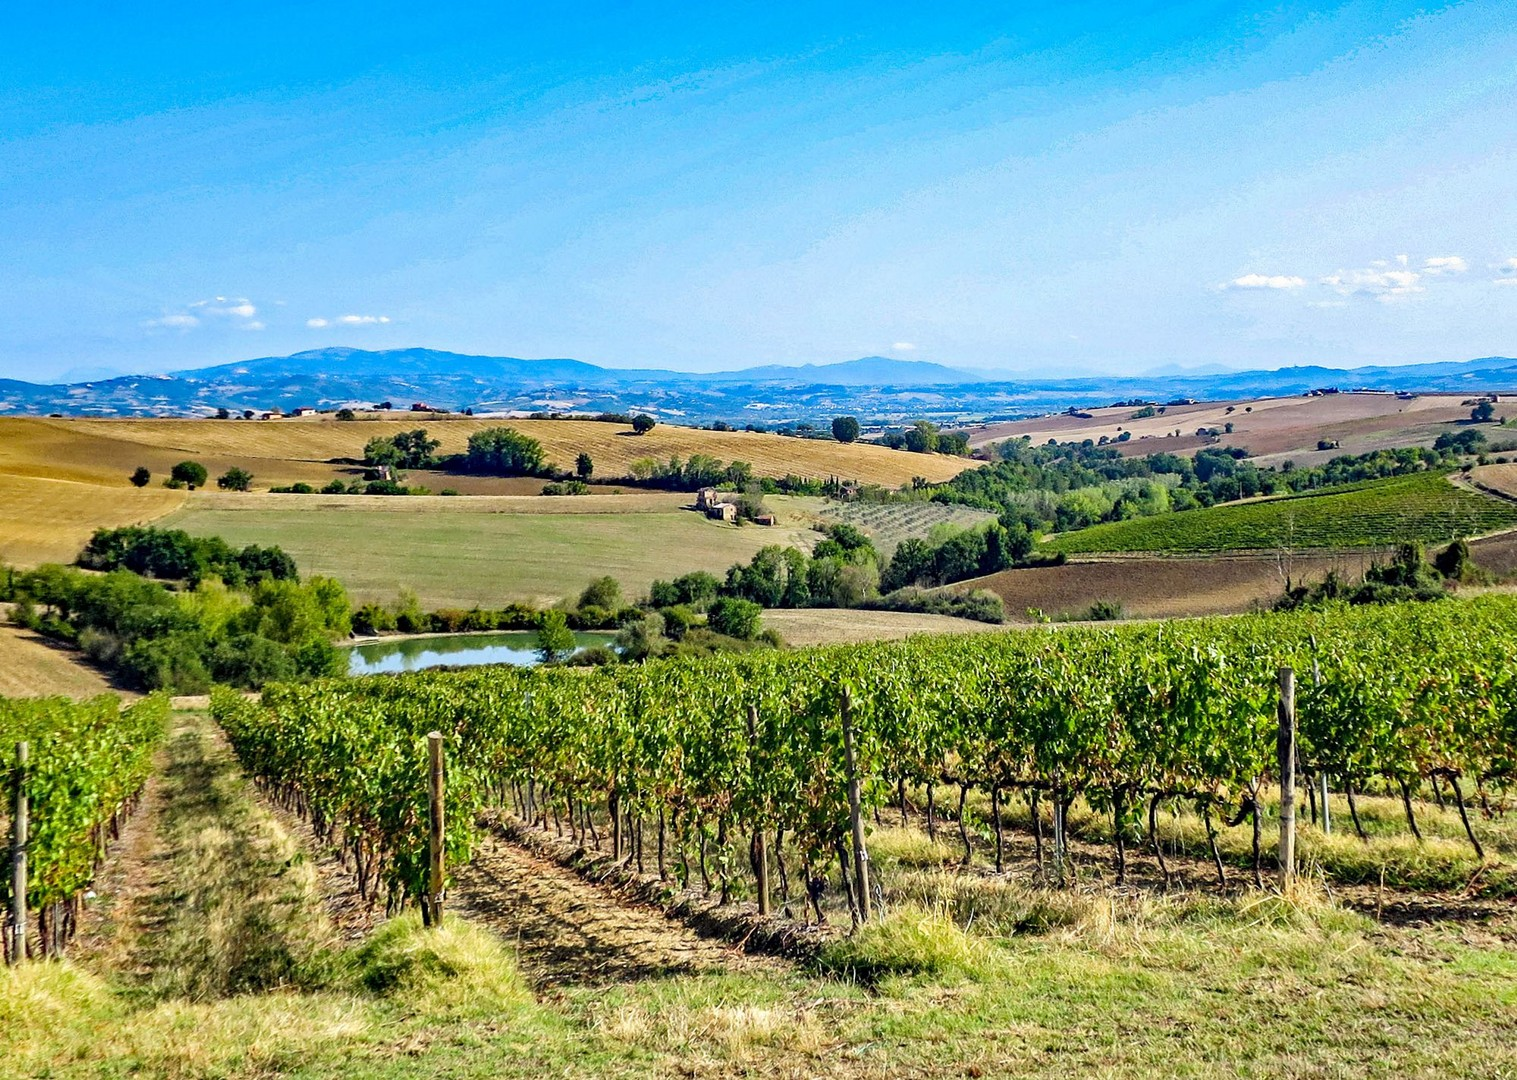 umbria-vineyard-cycling-italy-guided-road-holiday-saddle-skedaddle.jpg - NEW! Italy - Coast to Coast - L'Adriatico al Tirreno - Road Cycling